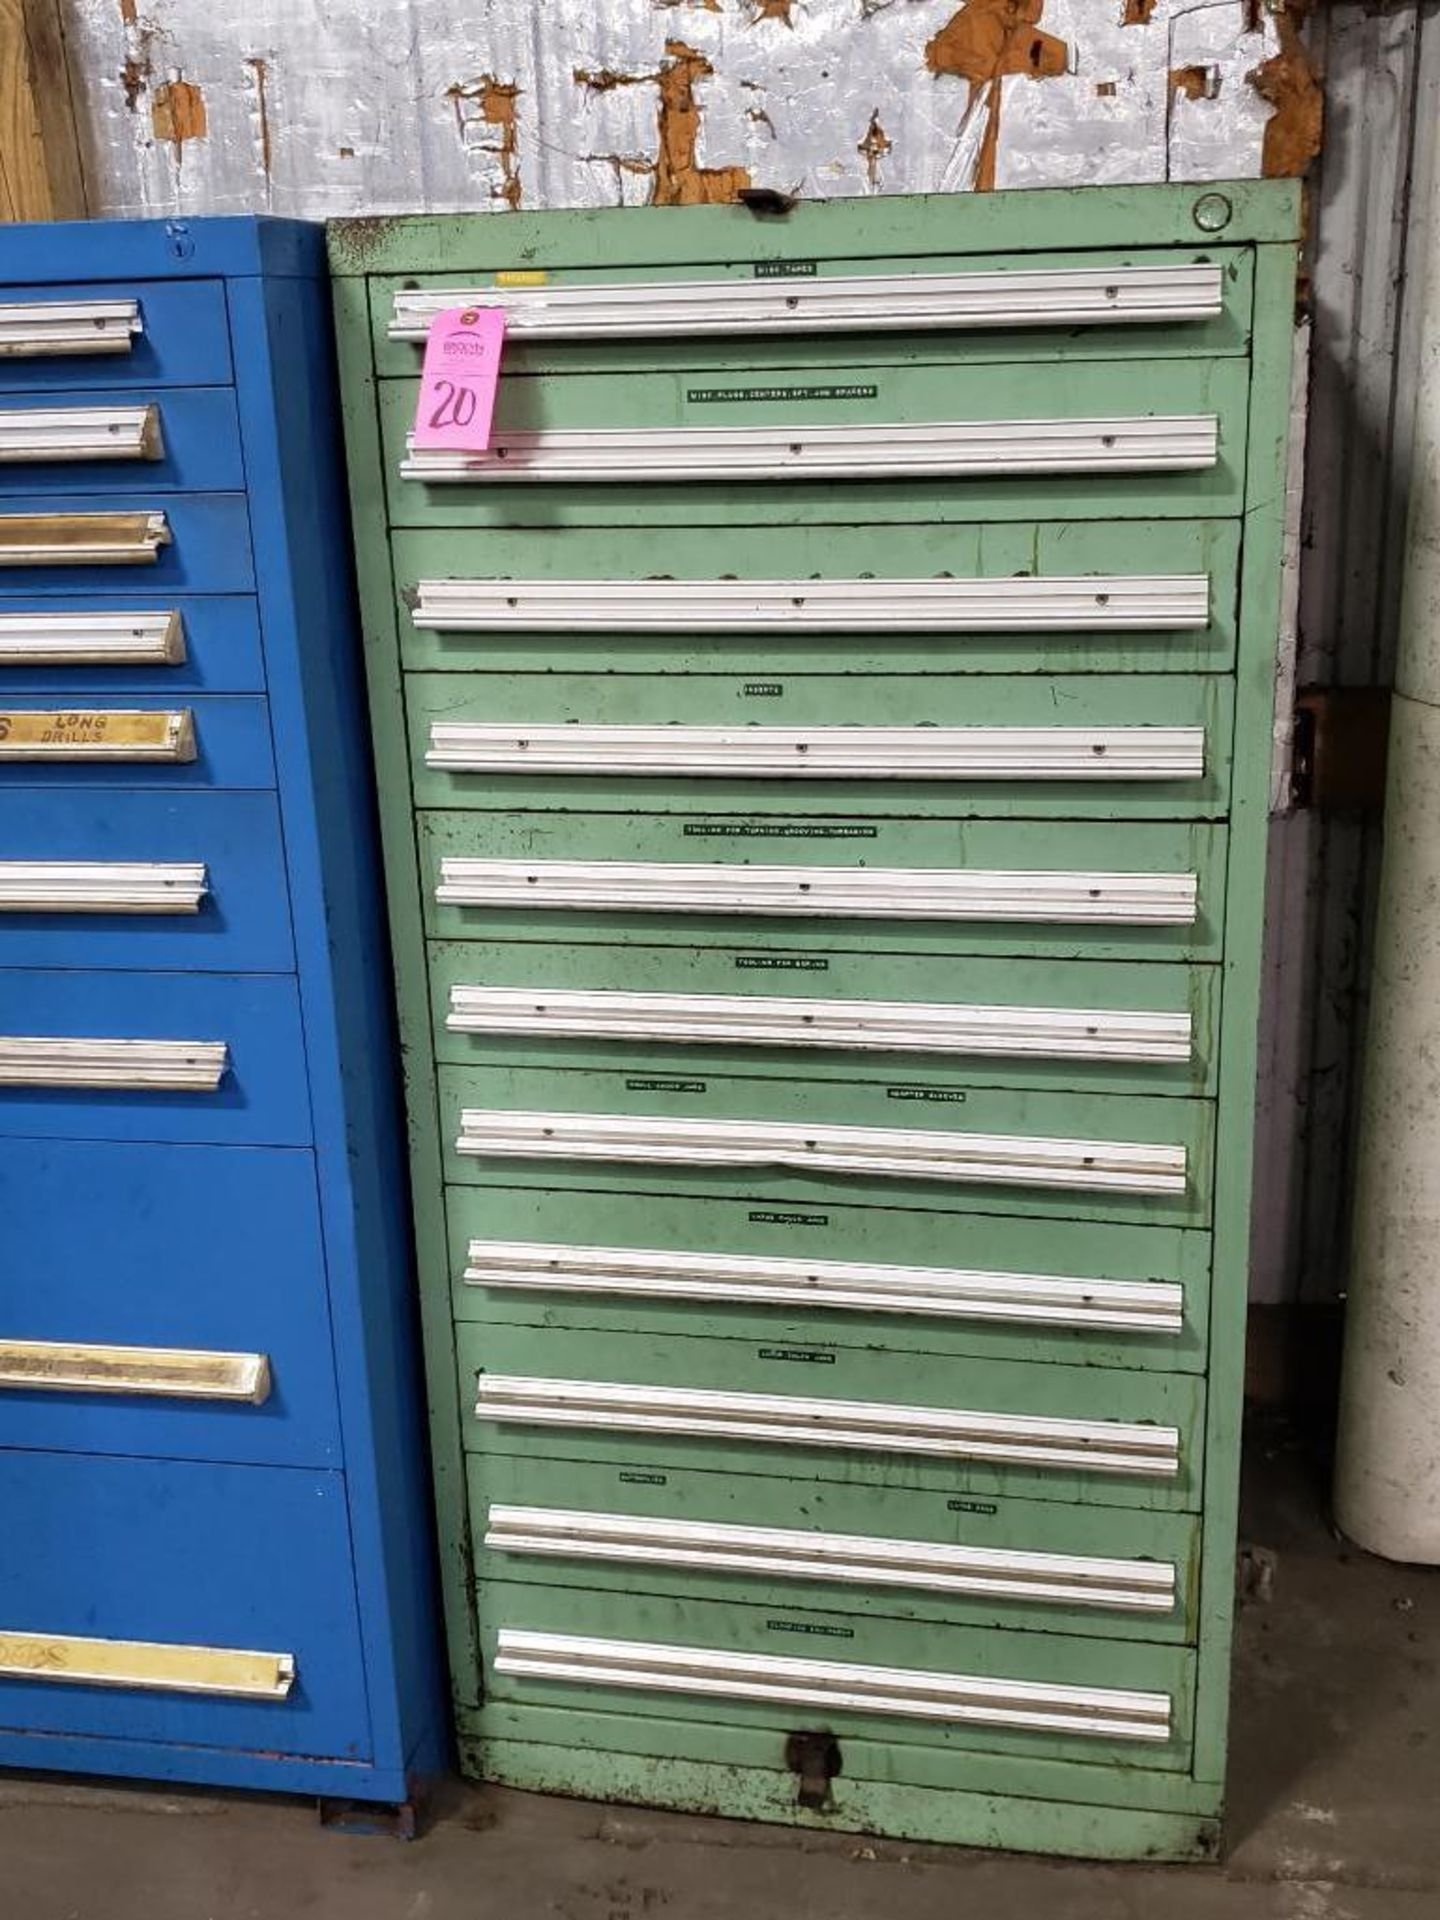 Lot 20 - 11 drawer Tool cabinet. Overall dimensions 59Tx30Wx28D.